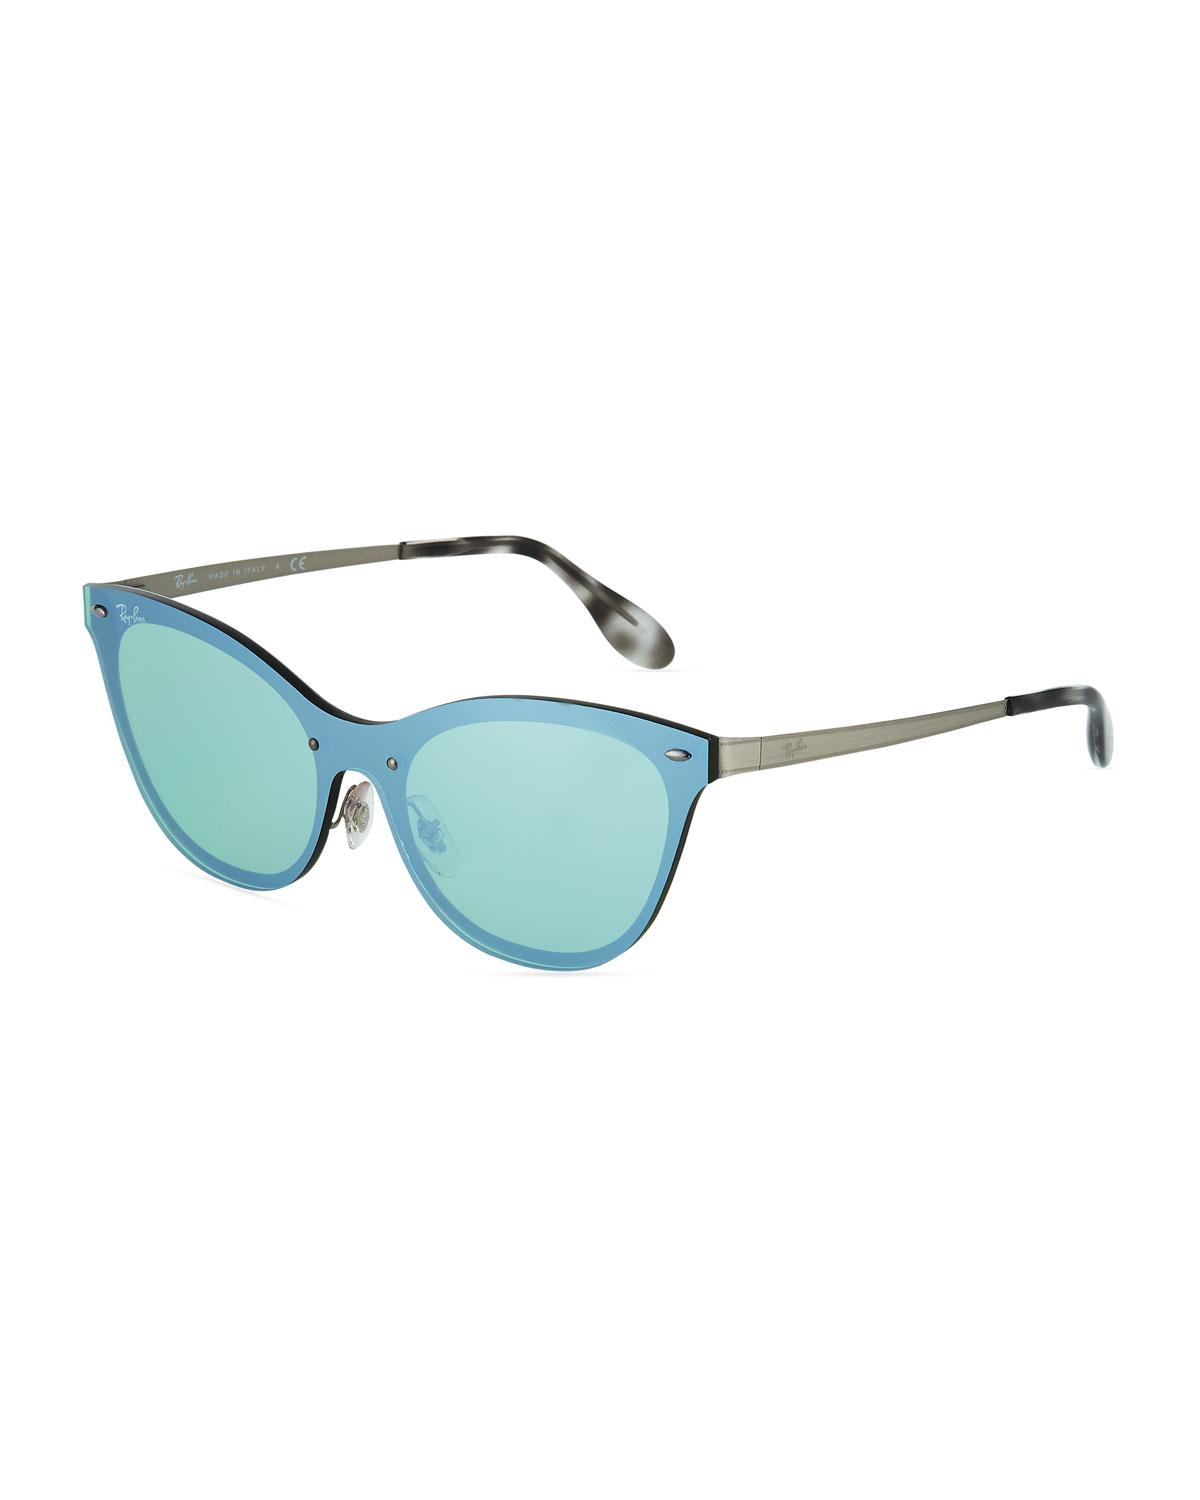 257e28d245 Lyst - Ray-Ban Mirrored Shield Cat-eye Sunglasses in Metallic